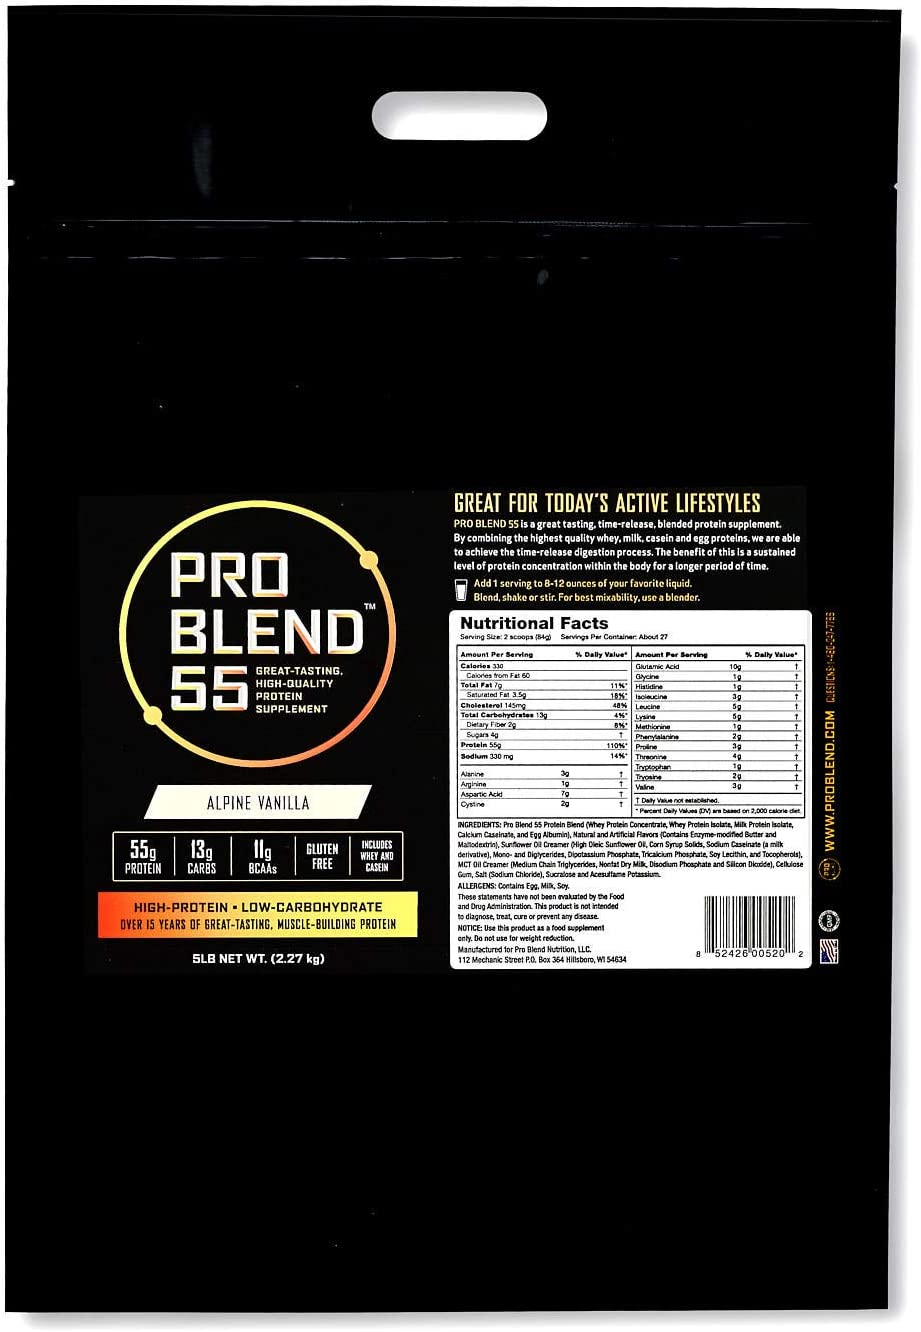 Pro Blend 55 Protein Powder Low Carb Gainer Meal Replacement Powder Whey, Casein, Egg Albumin Protein Alpine Vanilla 5 Pound